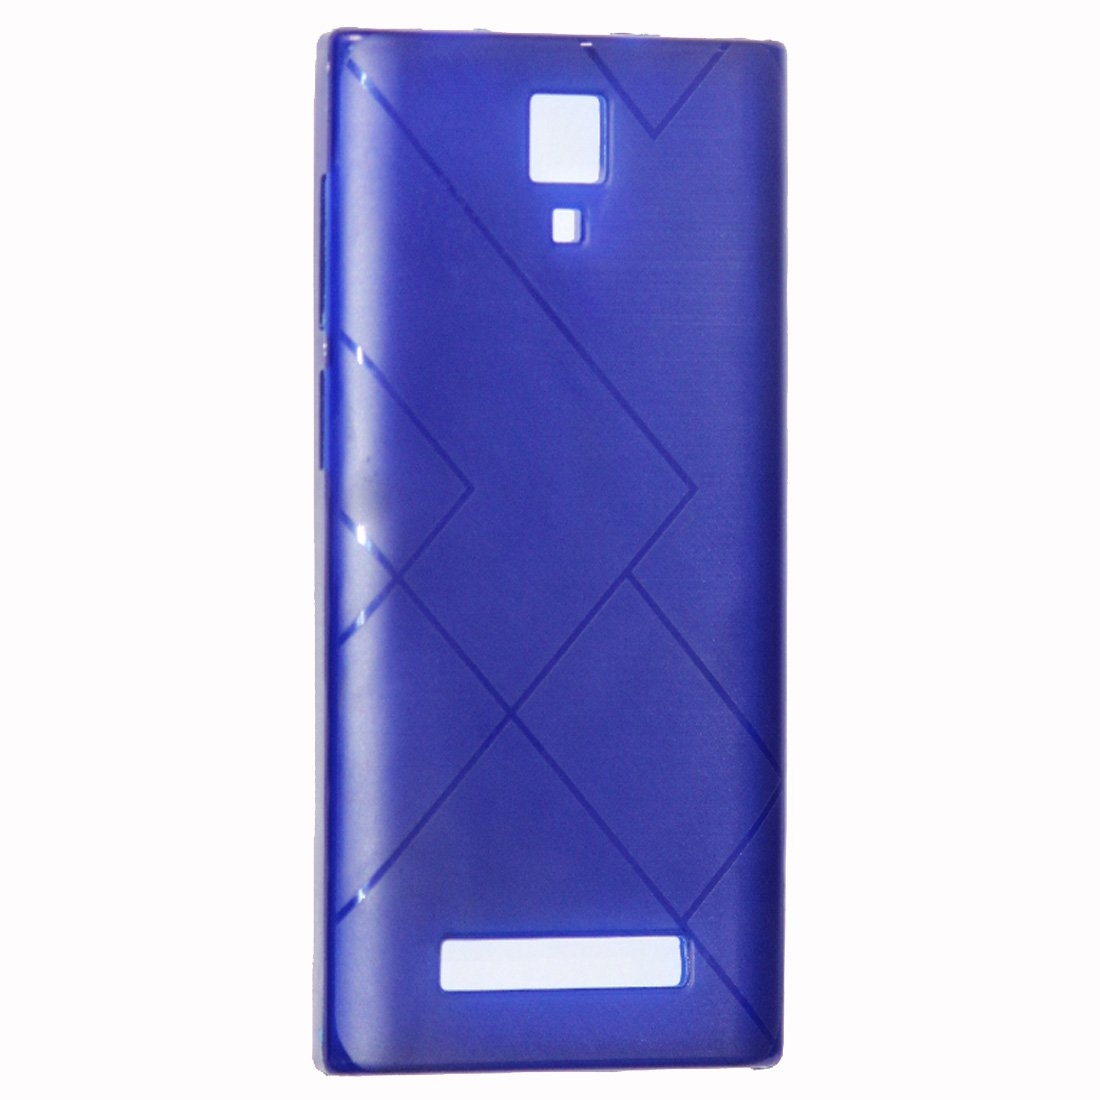 huge discount 06bac 9f041 Zaoma Matte Design Soft Silicon Back Cover for Micromax: Amazon.in ...